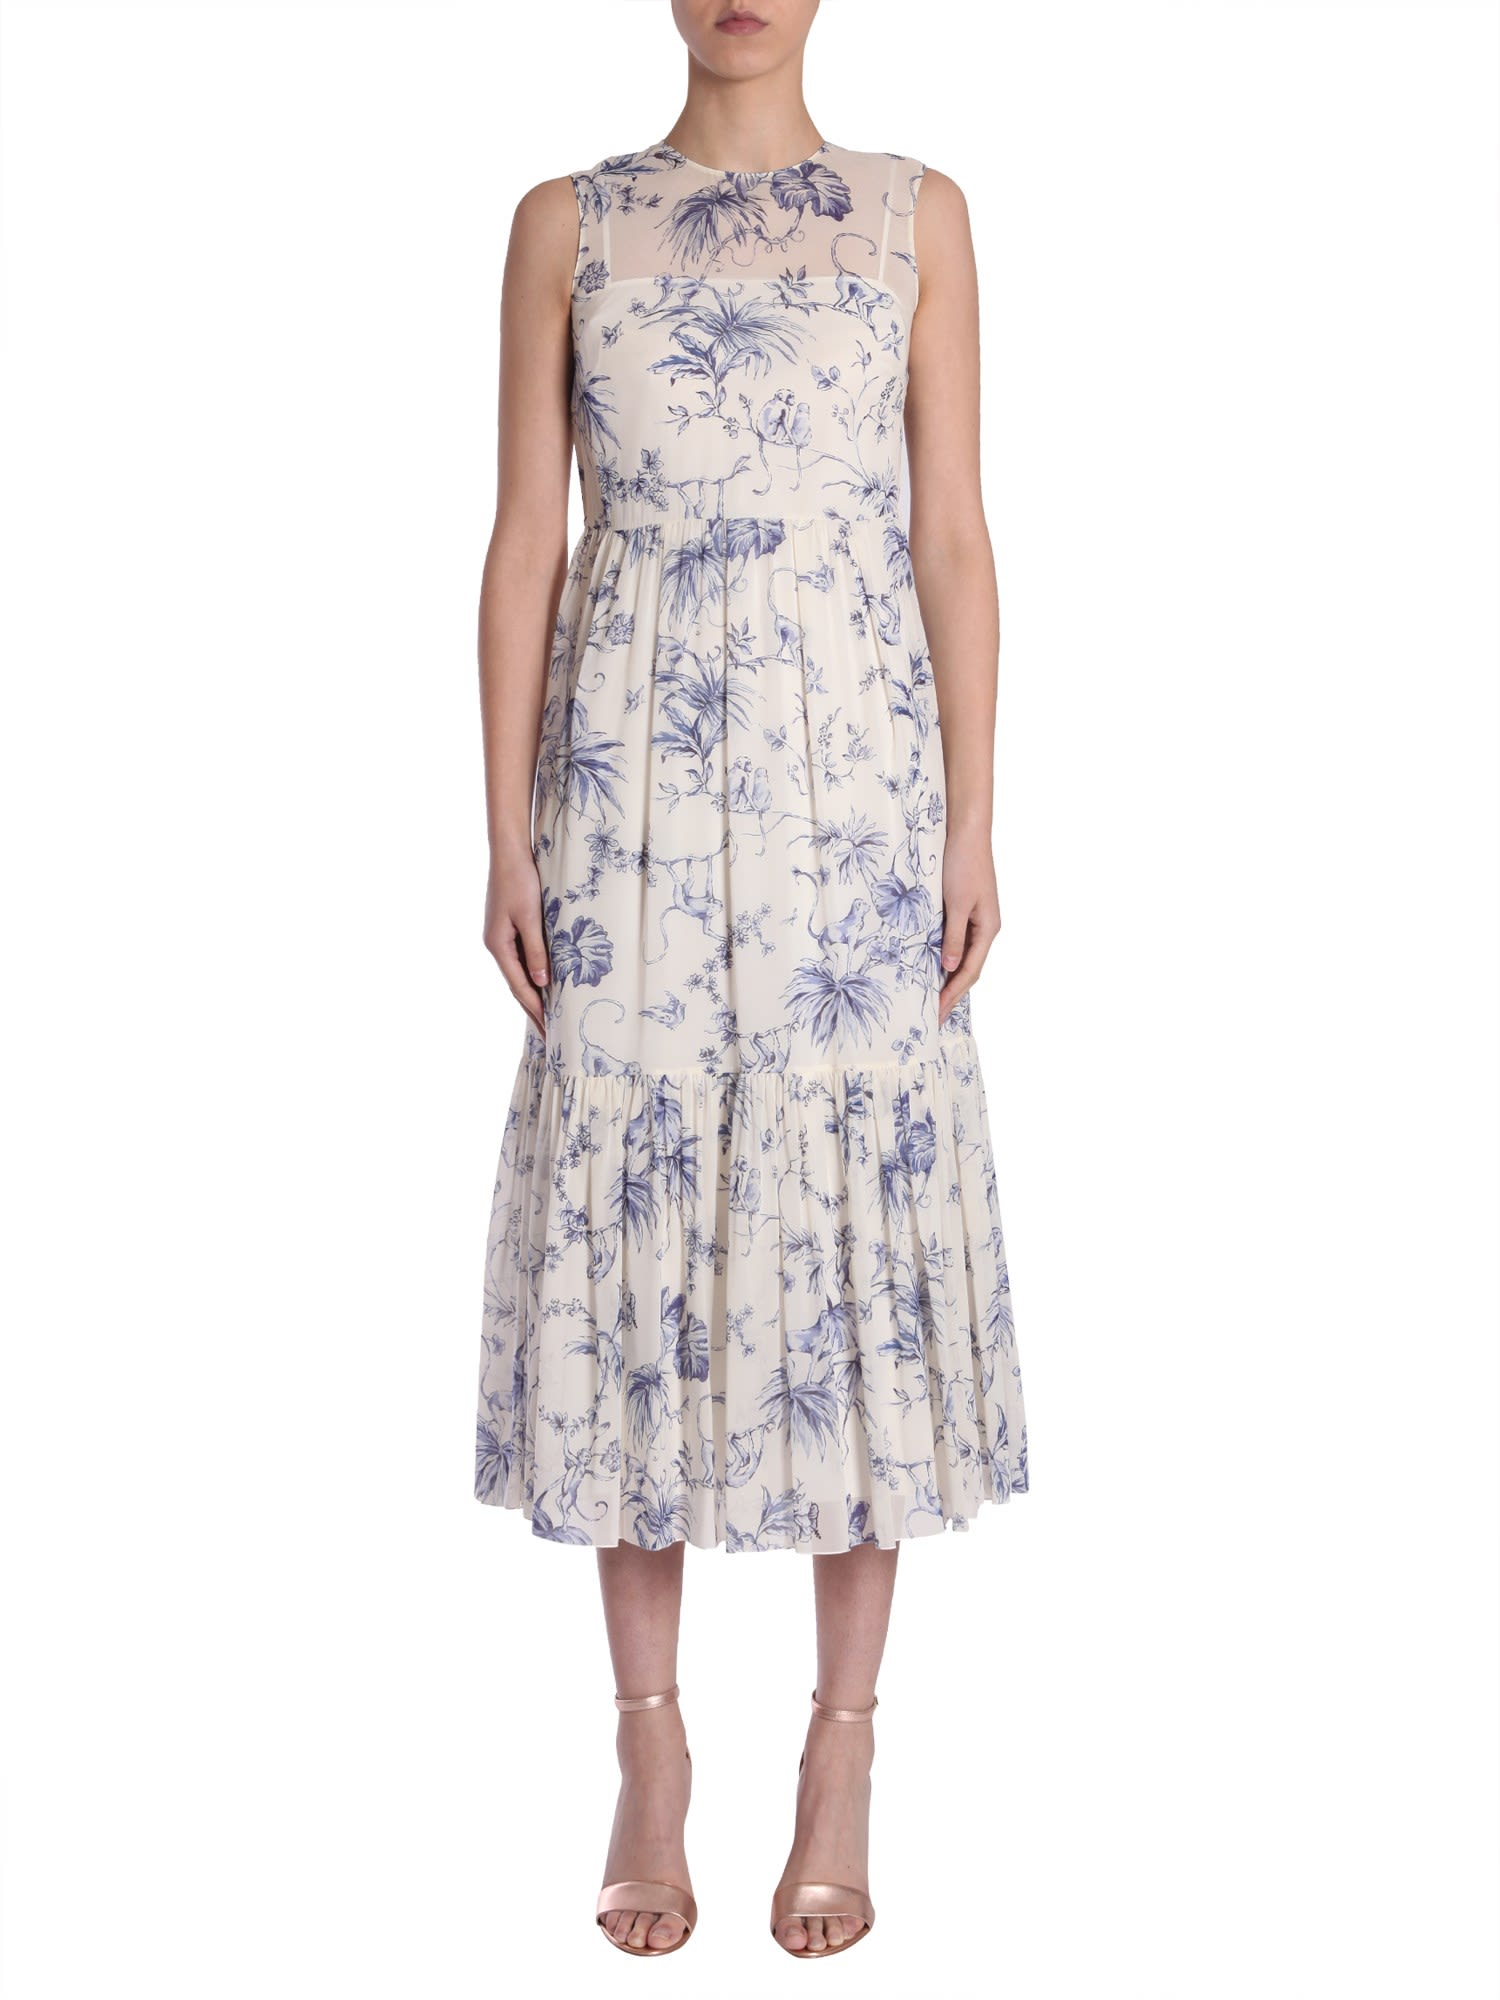 RED Valentino Silk Muslin Dress